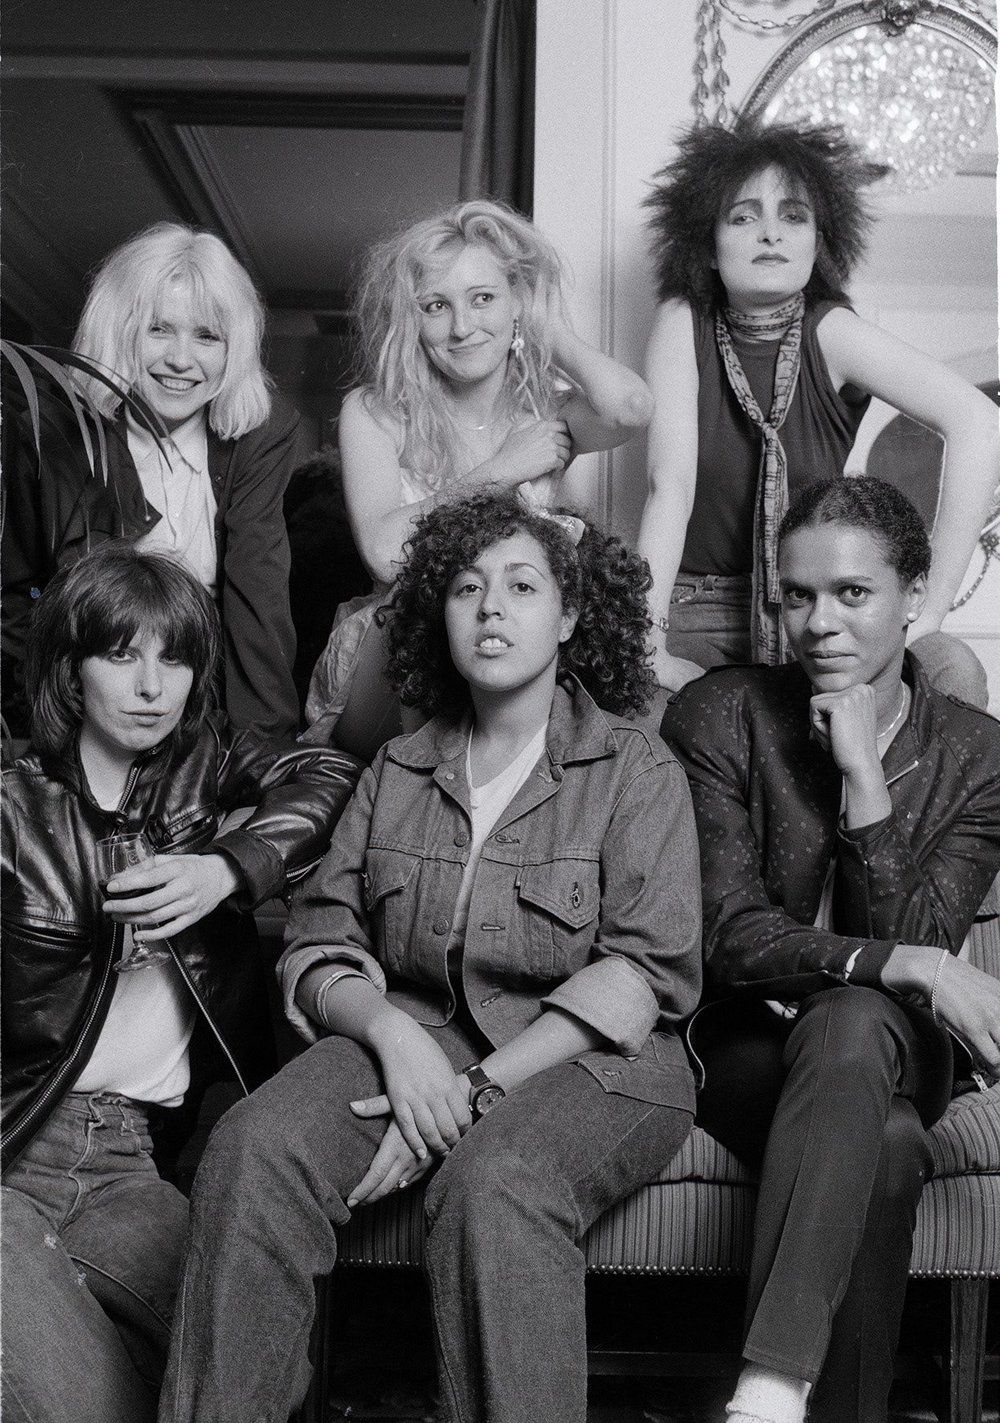 """Ladies Tea Party"" - Debbie Harry, Viv Albertine (The Slits), Siouxsie Sioux, Chrissie Hynde, Poly Styrene (X-Ray Spex), Pauline Black (The Selector), London, 1980"